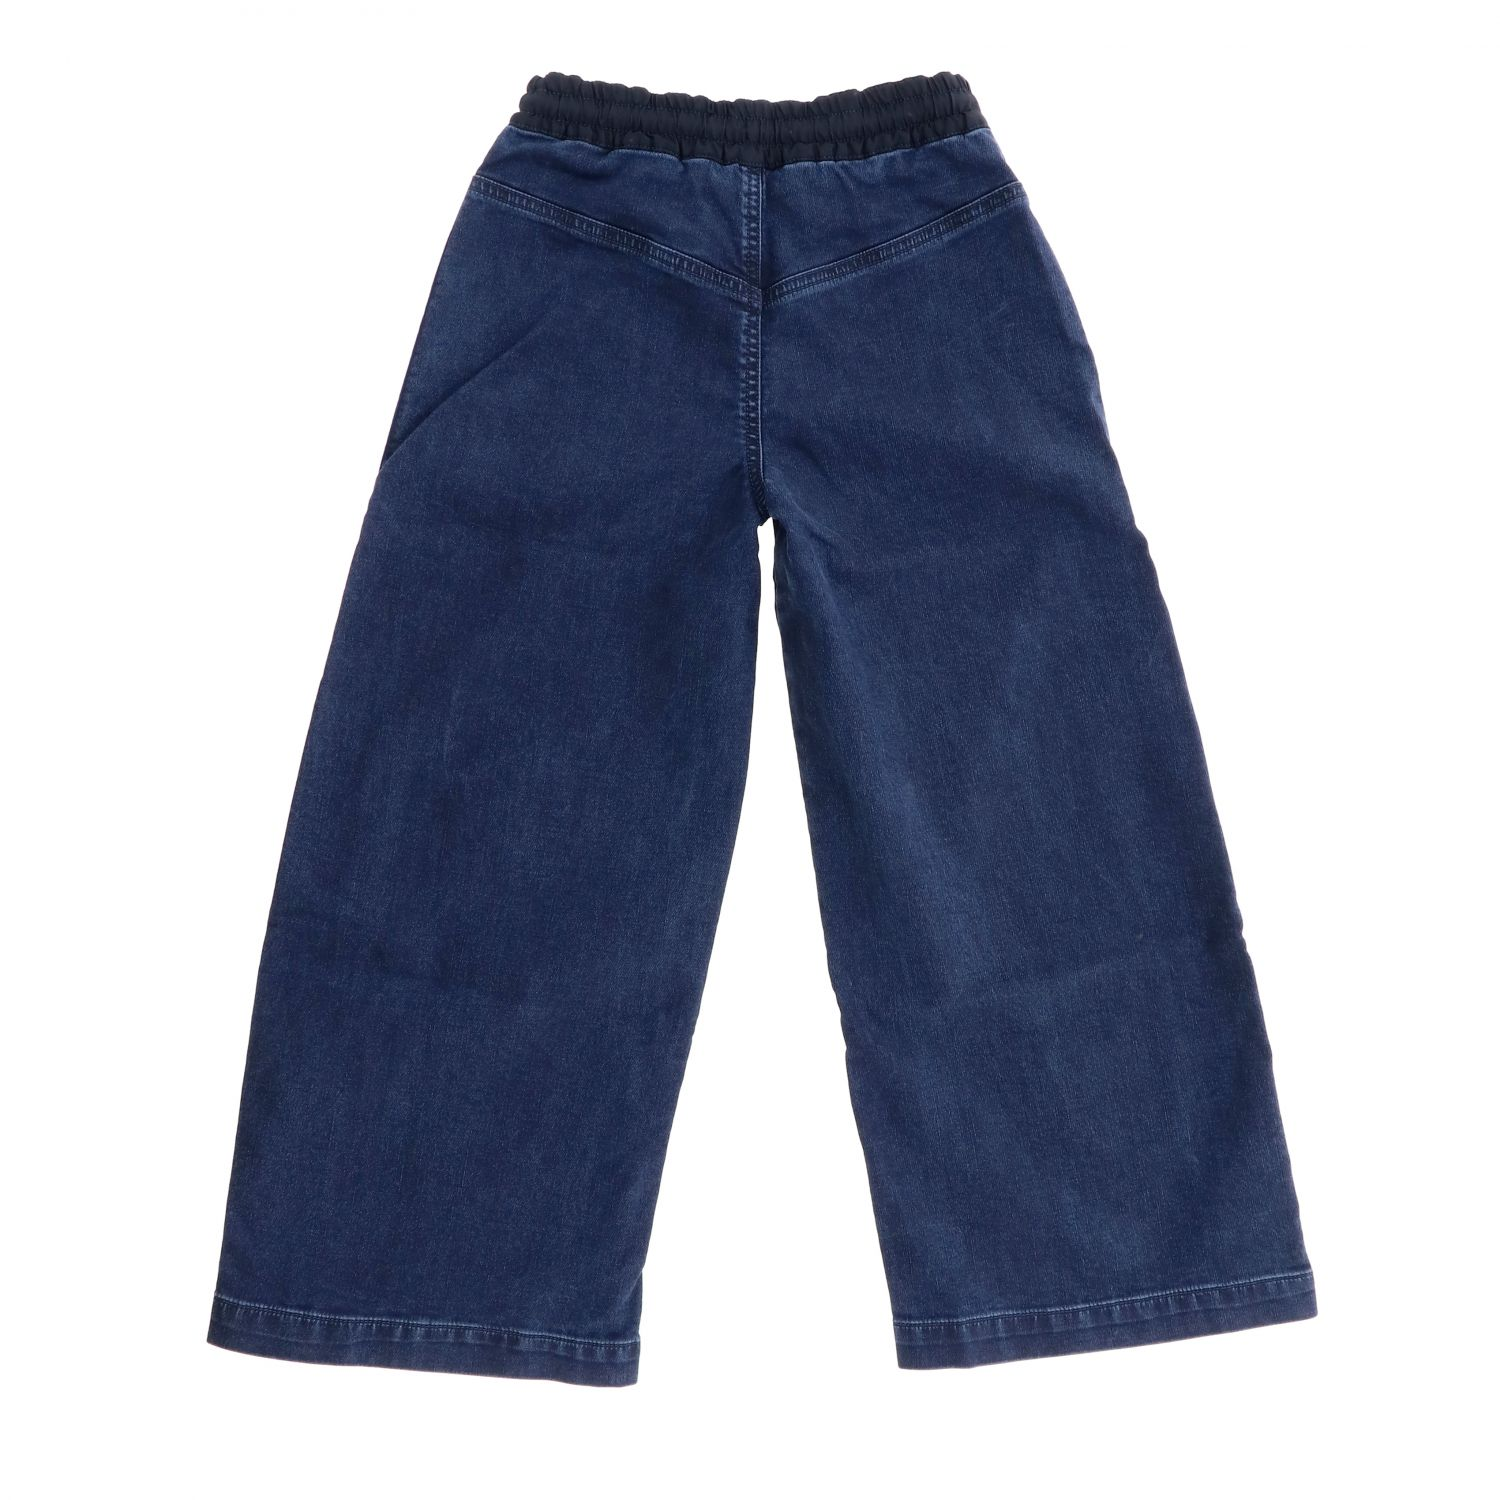 Pantalone Diesel: Pantalone Diesel con zip e coulisse con bande a righe blue 2